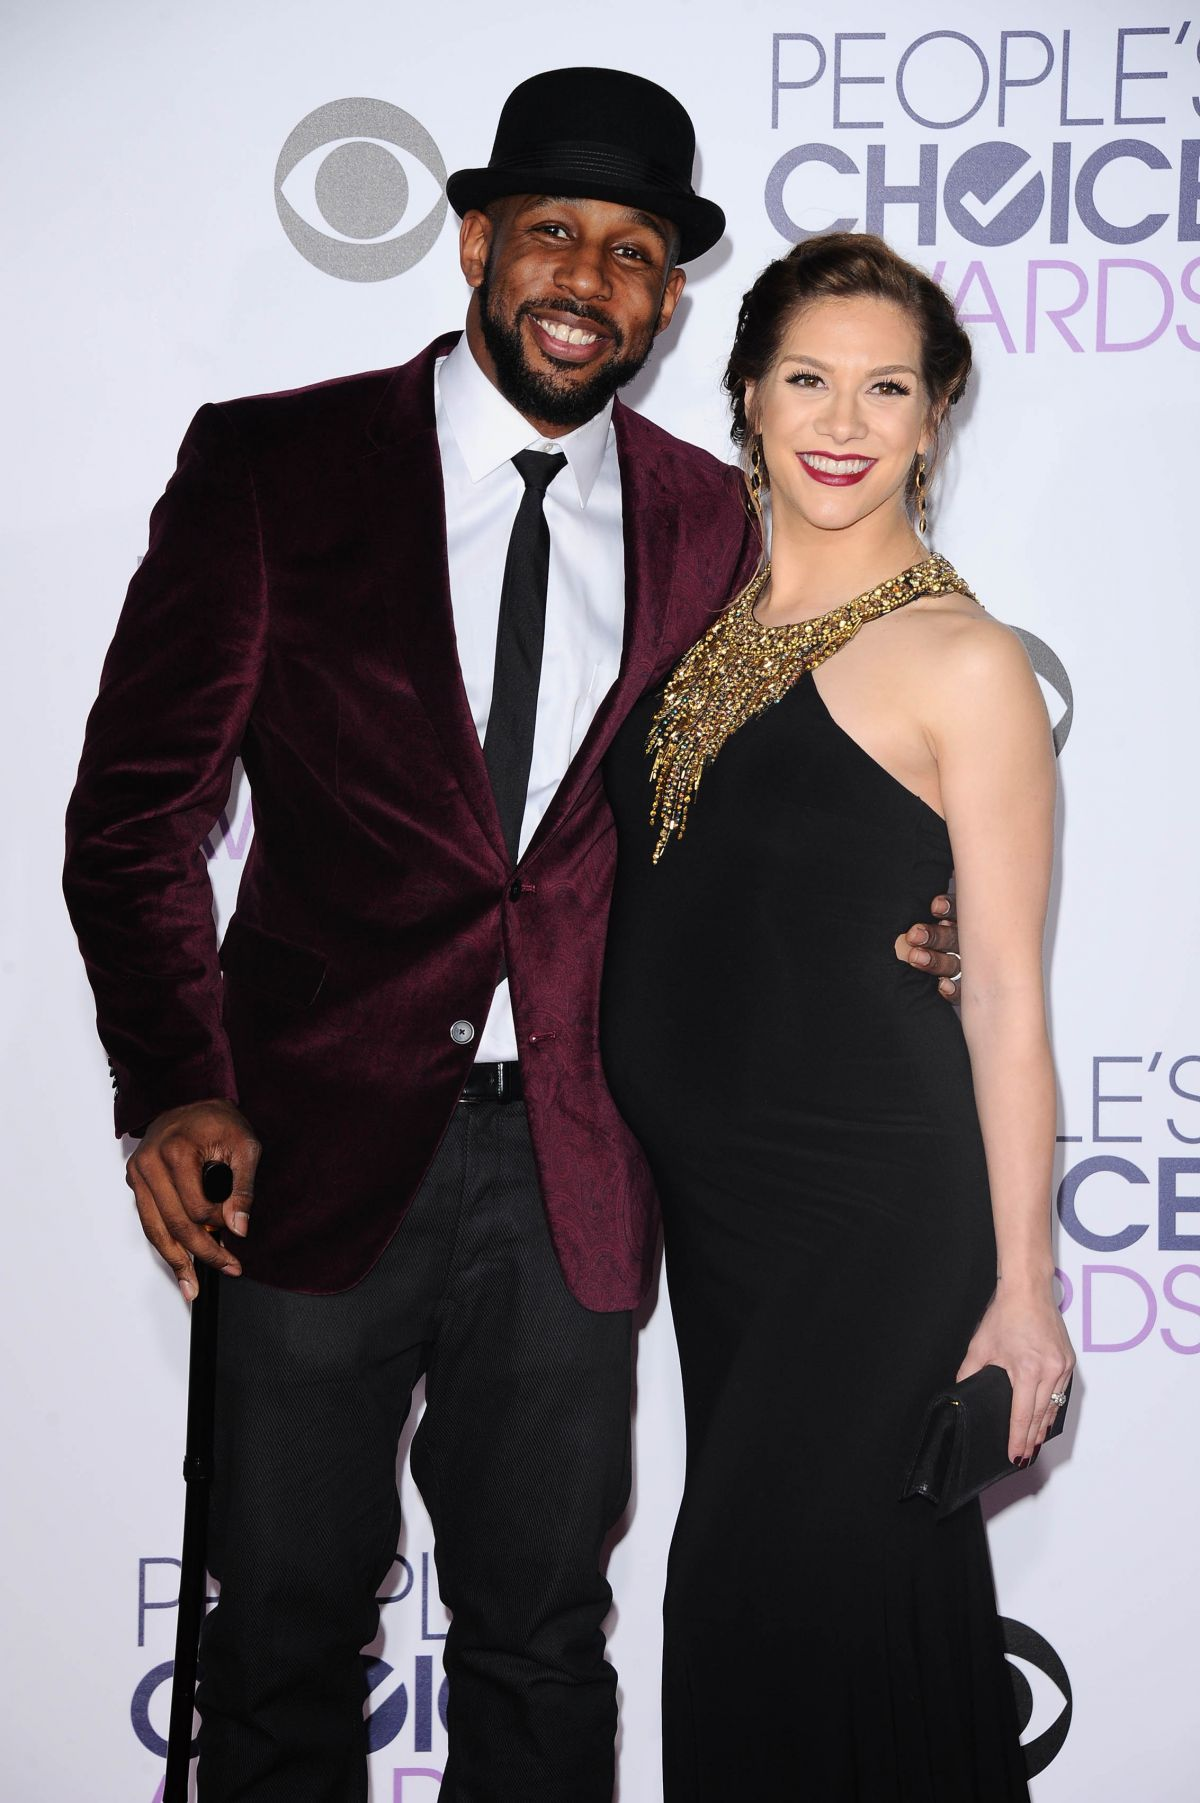 ALLISON HOLKER at 2016 People's Choice Awards in Los Angeles 01/06/2016